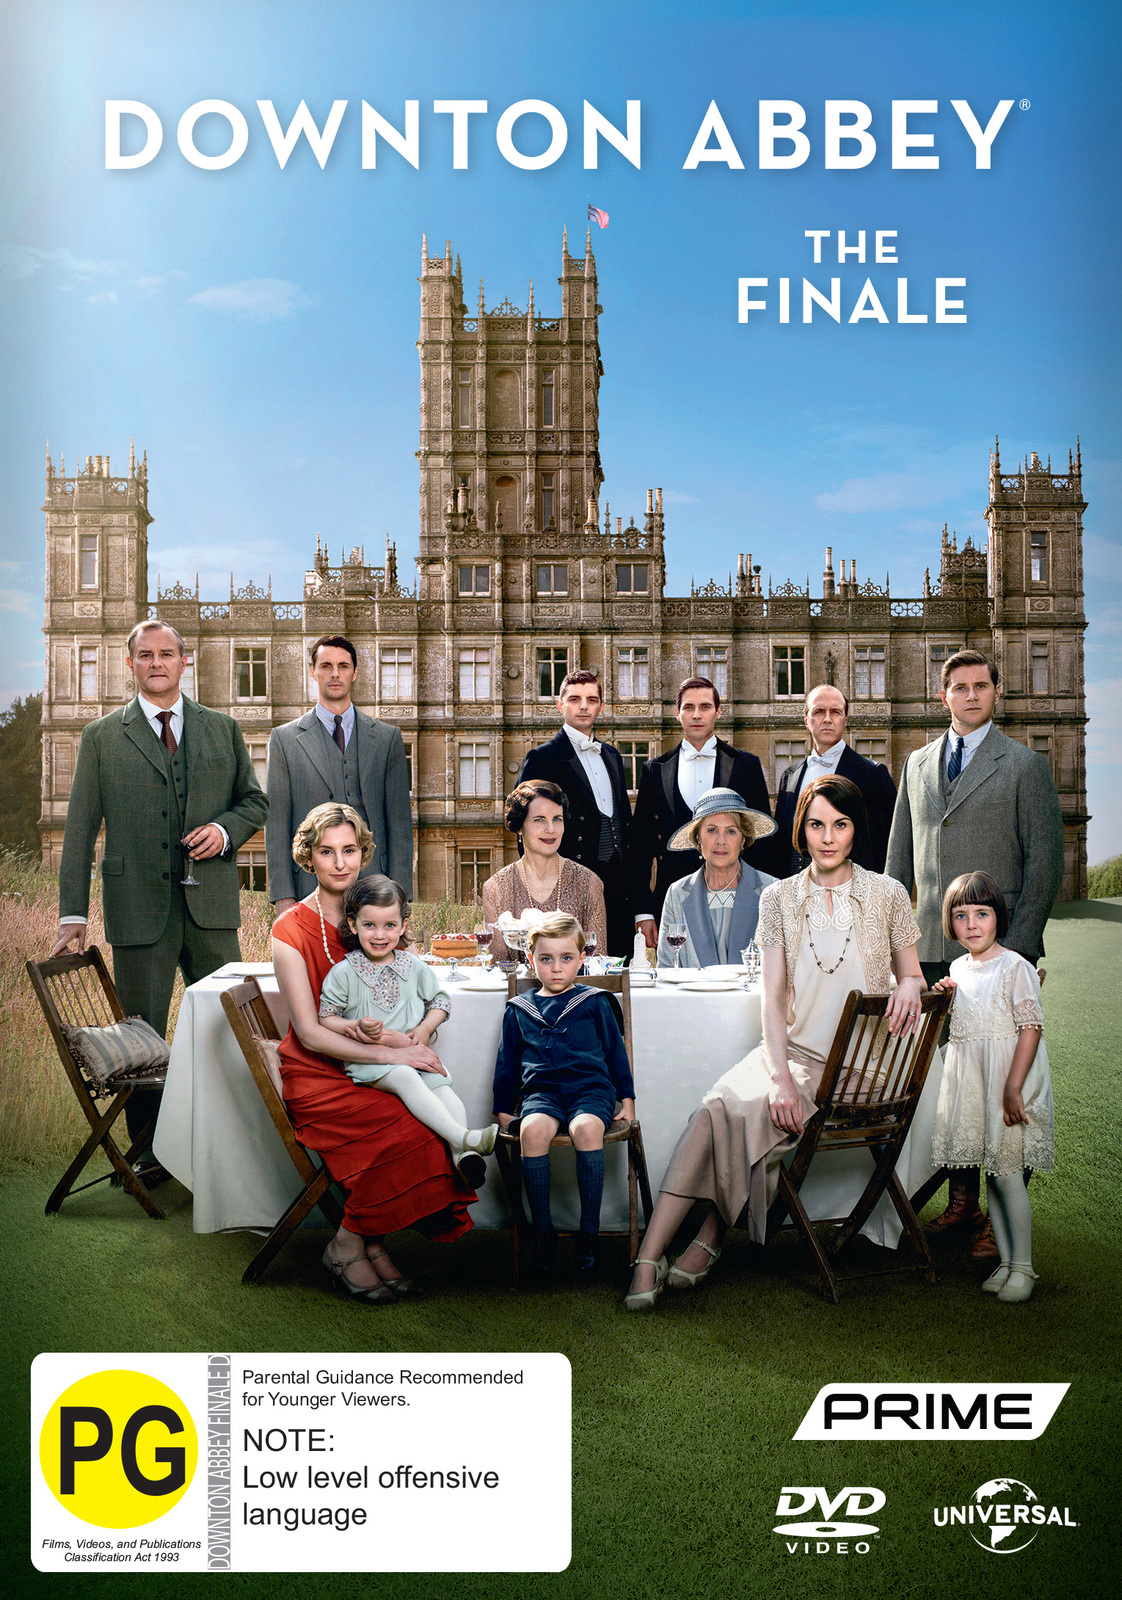 Downton Abbey: Christmas 2015 - Final Episode on DVD image